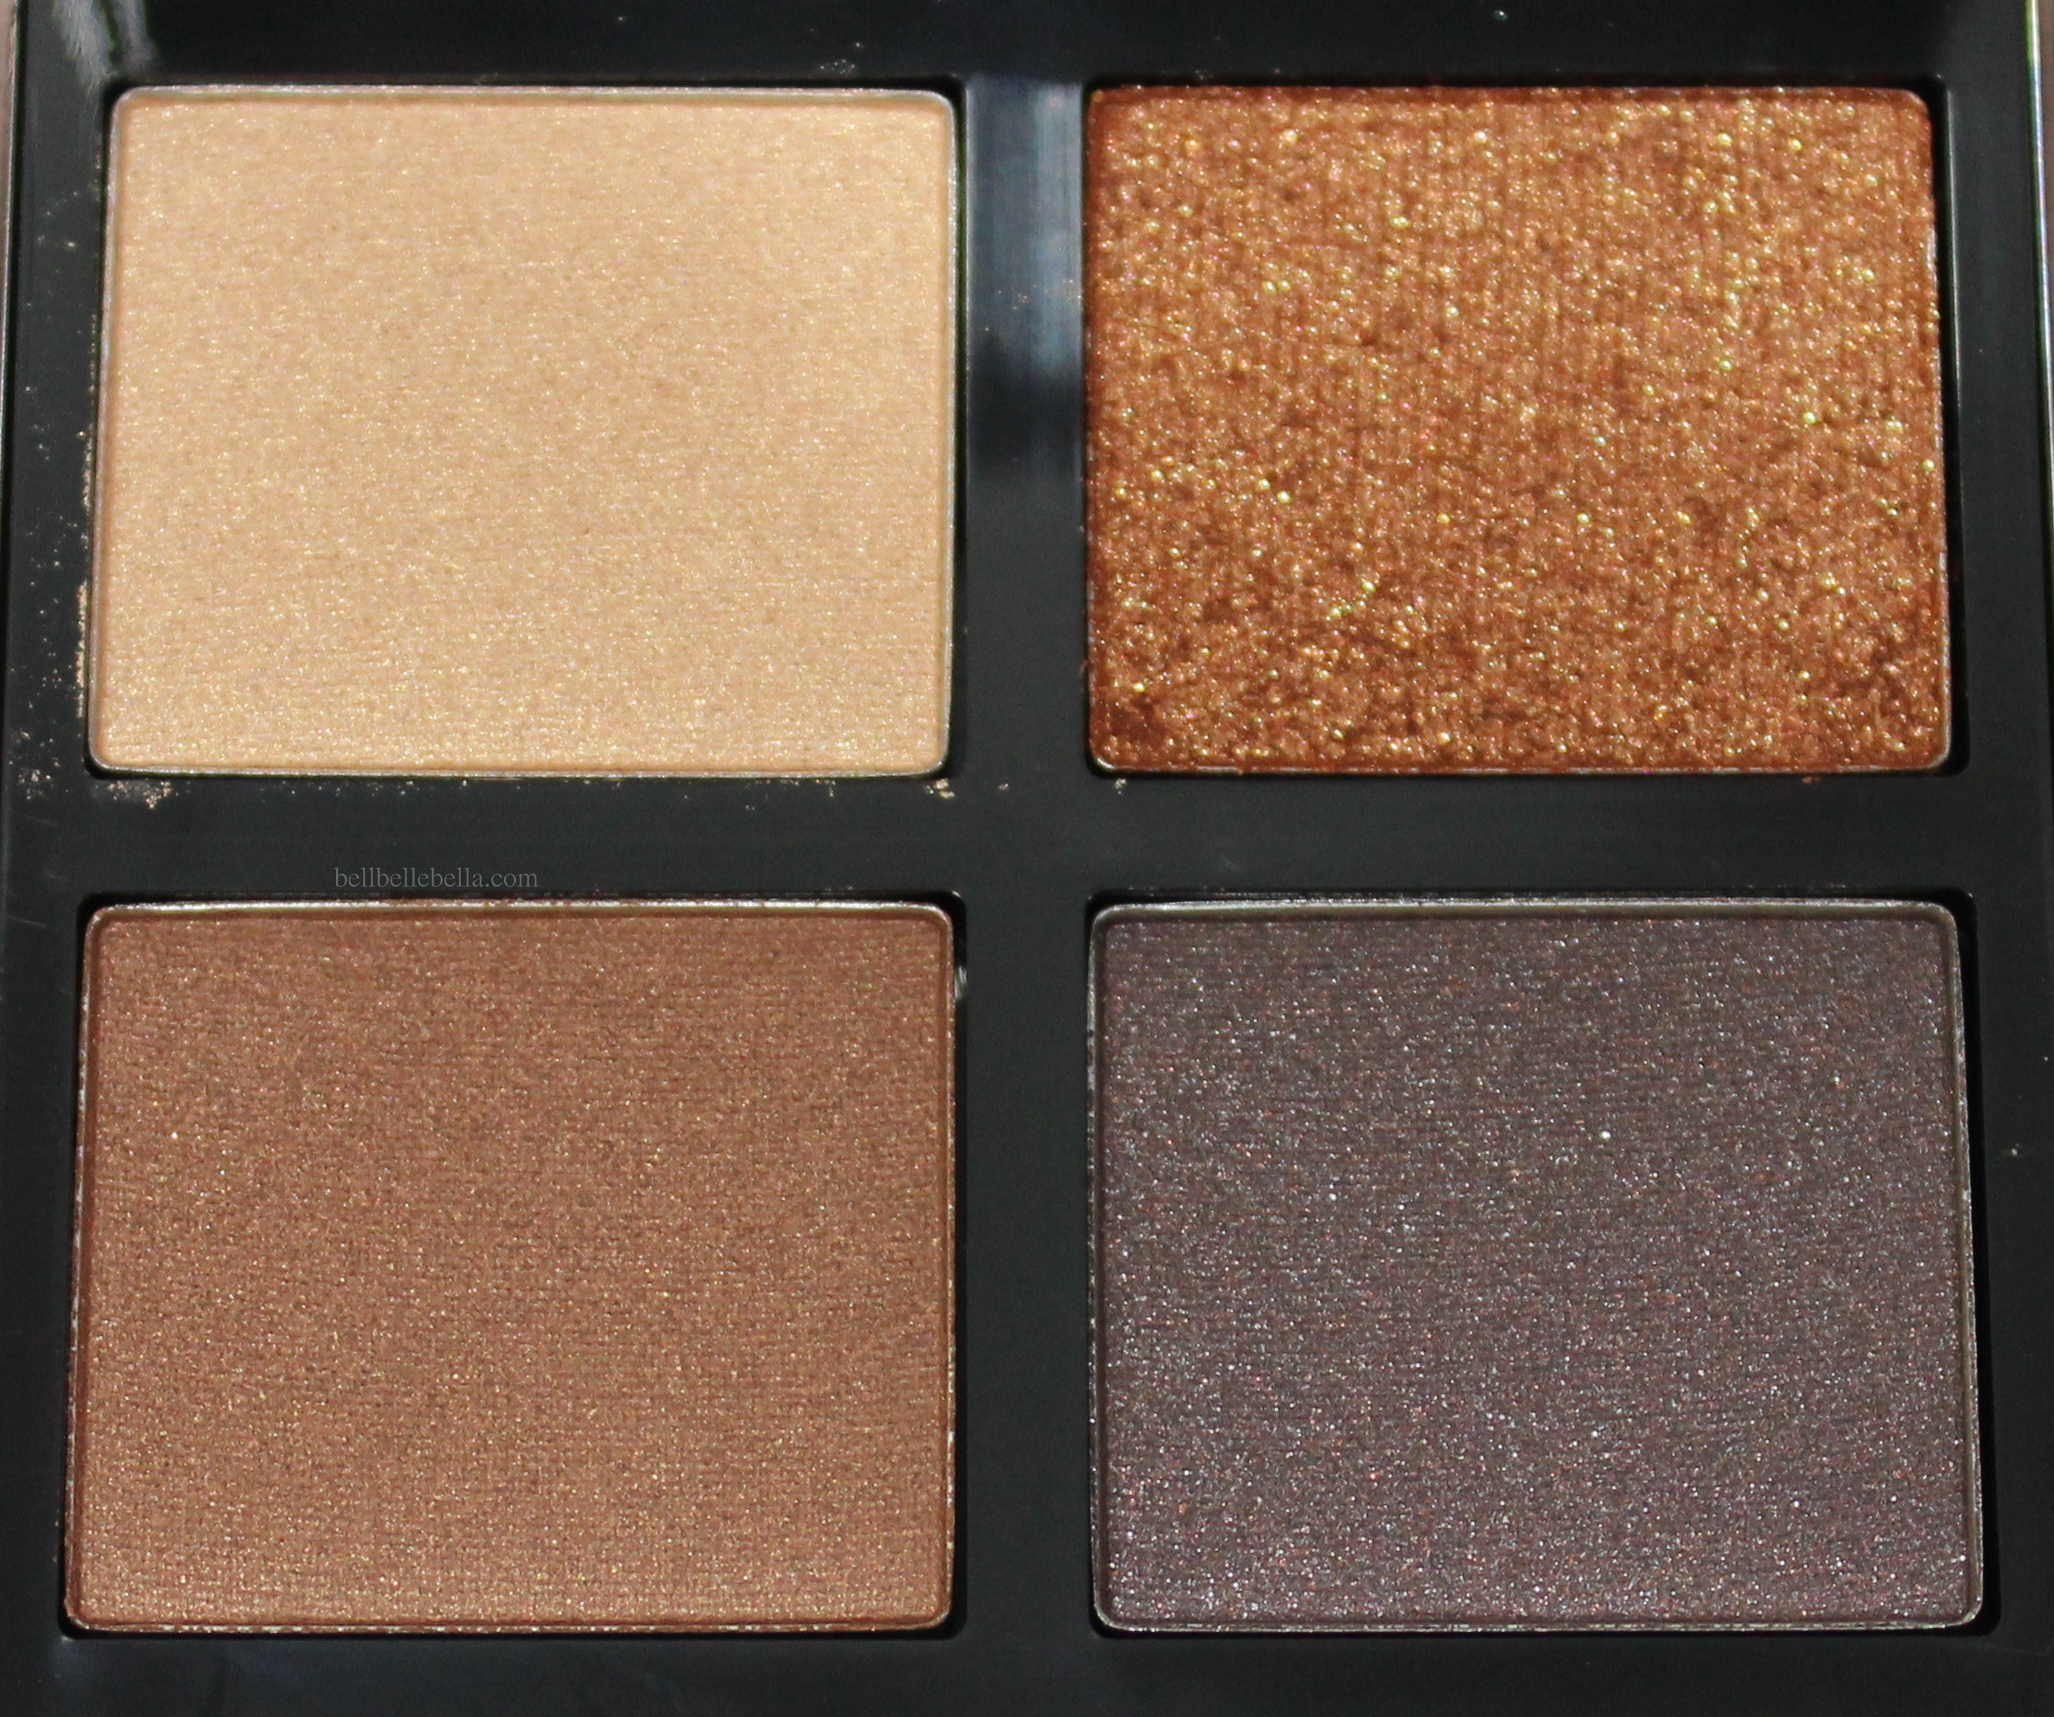 Tom Ford Eye Color Quad in Cognac Sable Review & Swatches graphic